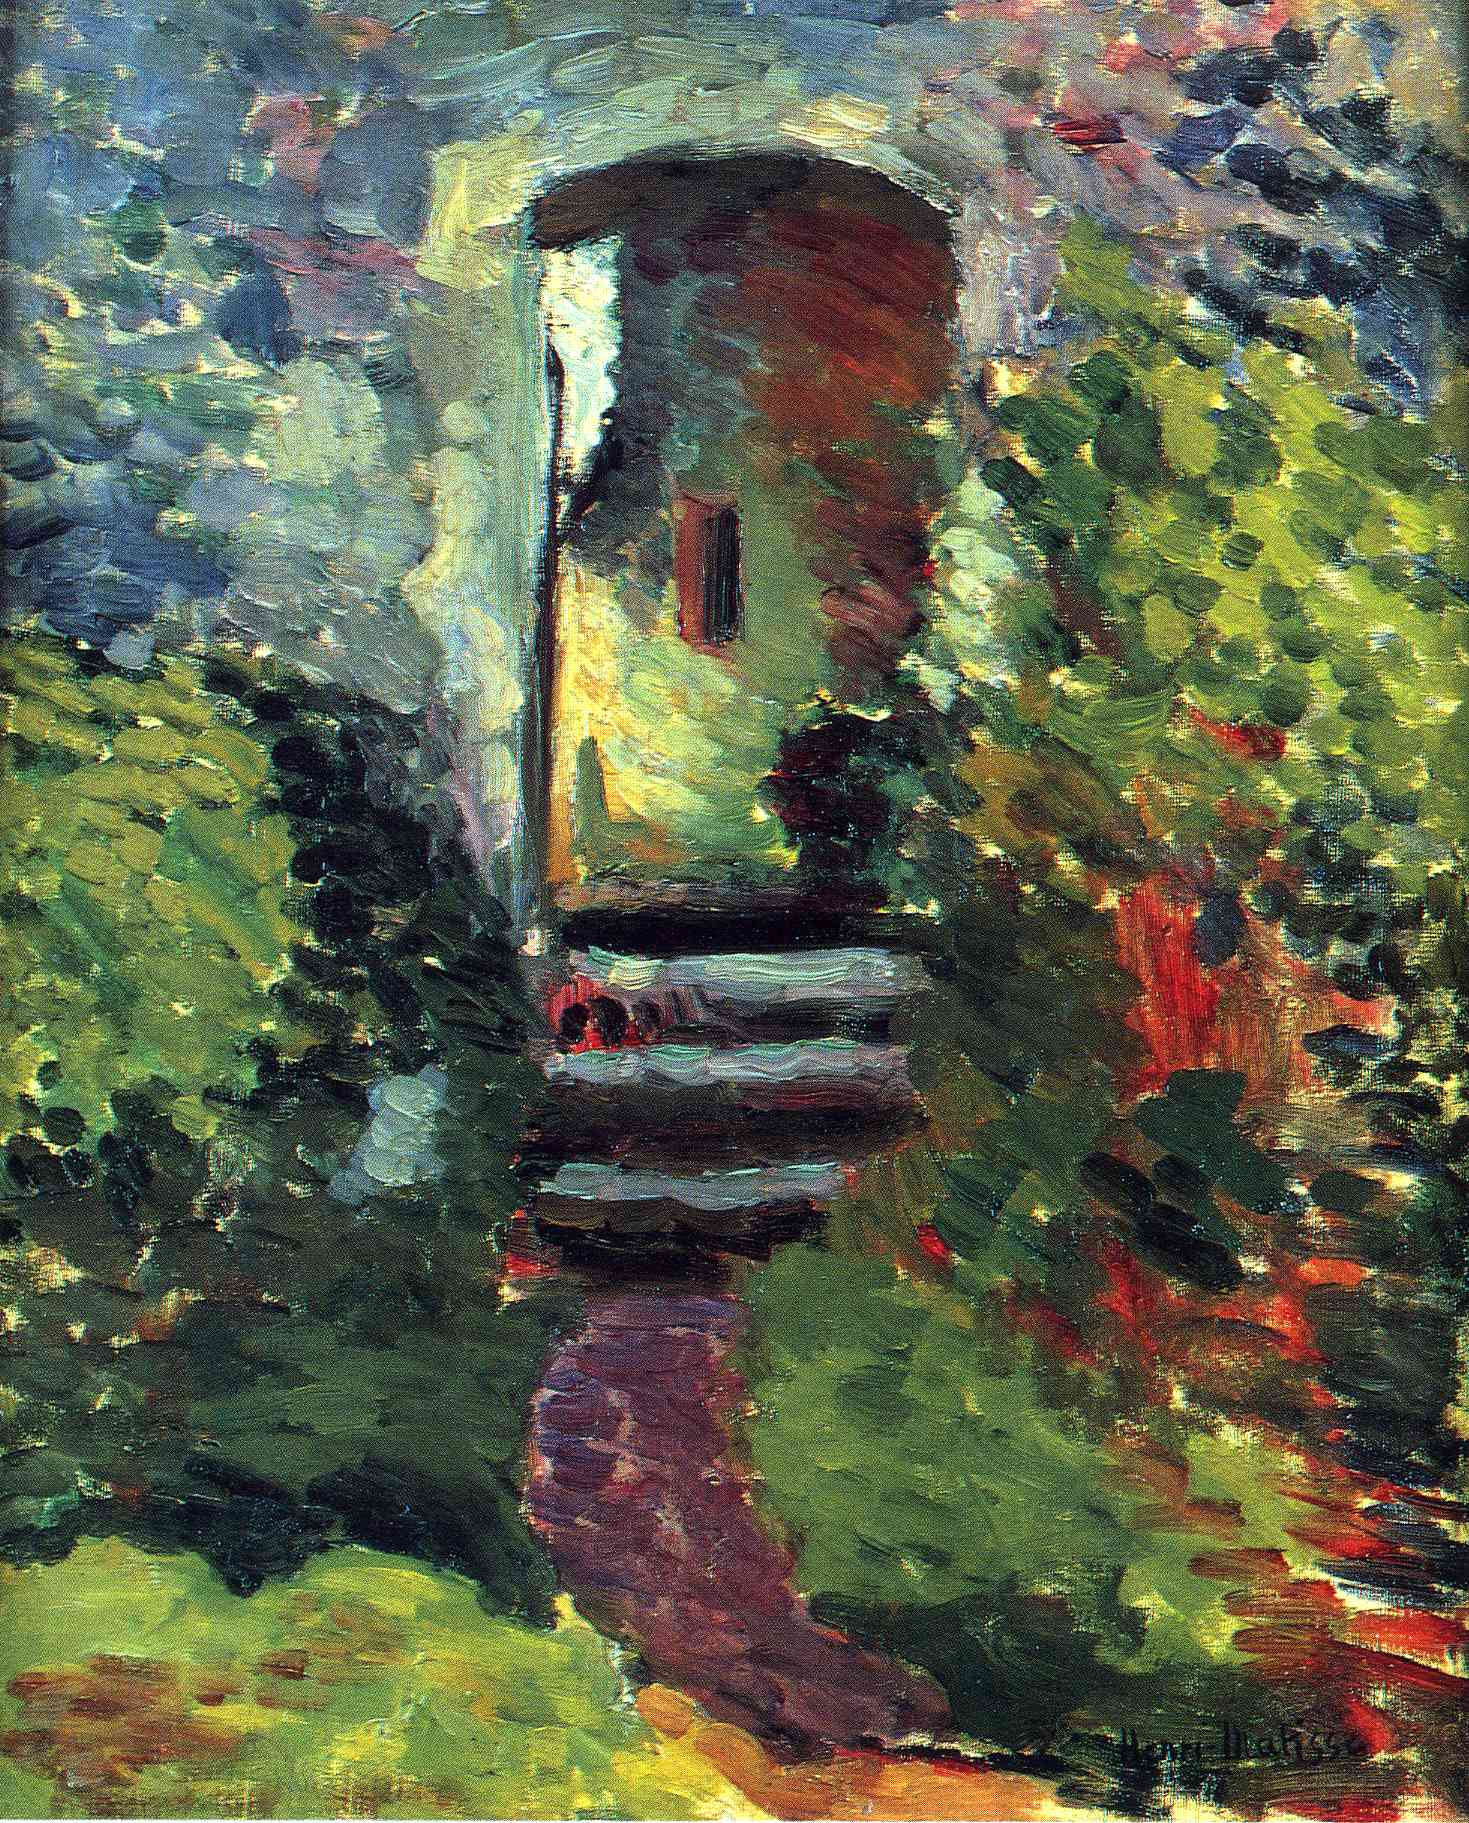 Henri Matisse - The Little Gate of the Old Mill 1898